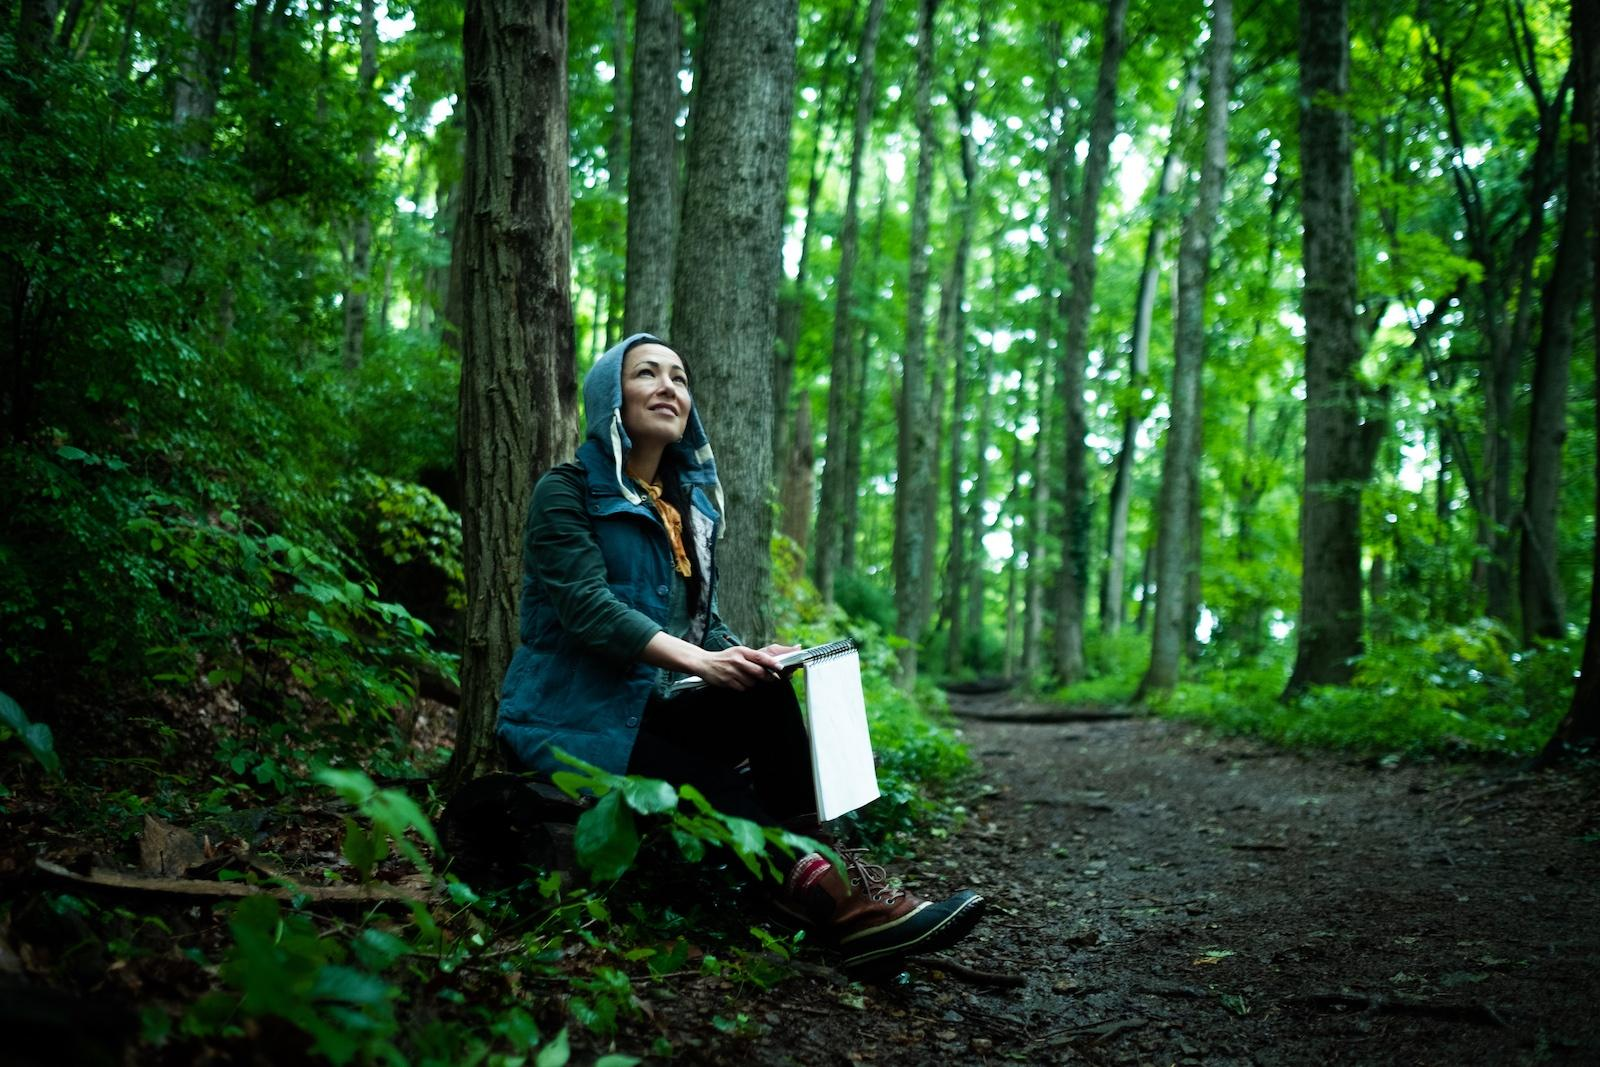 Woman sketches in her journal in the woods